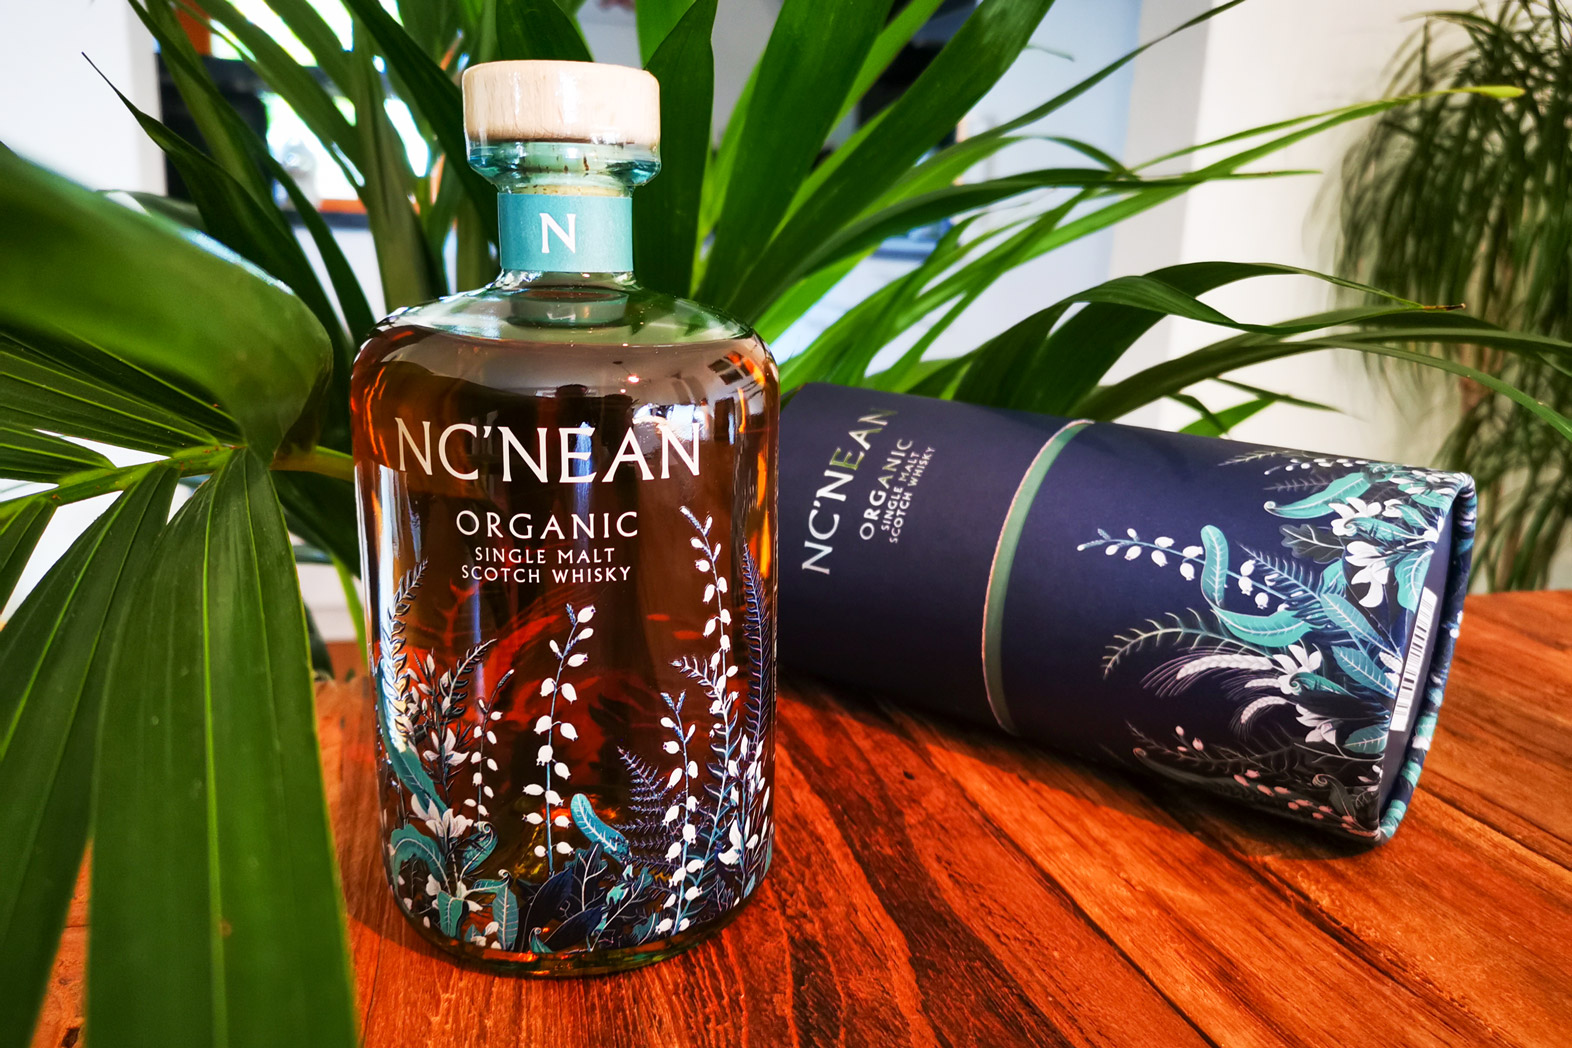 Nc´nean Organic Single Malt Scotch Whisky